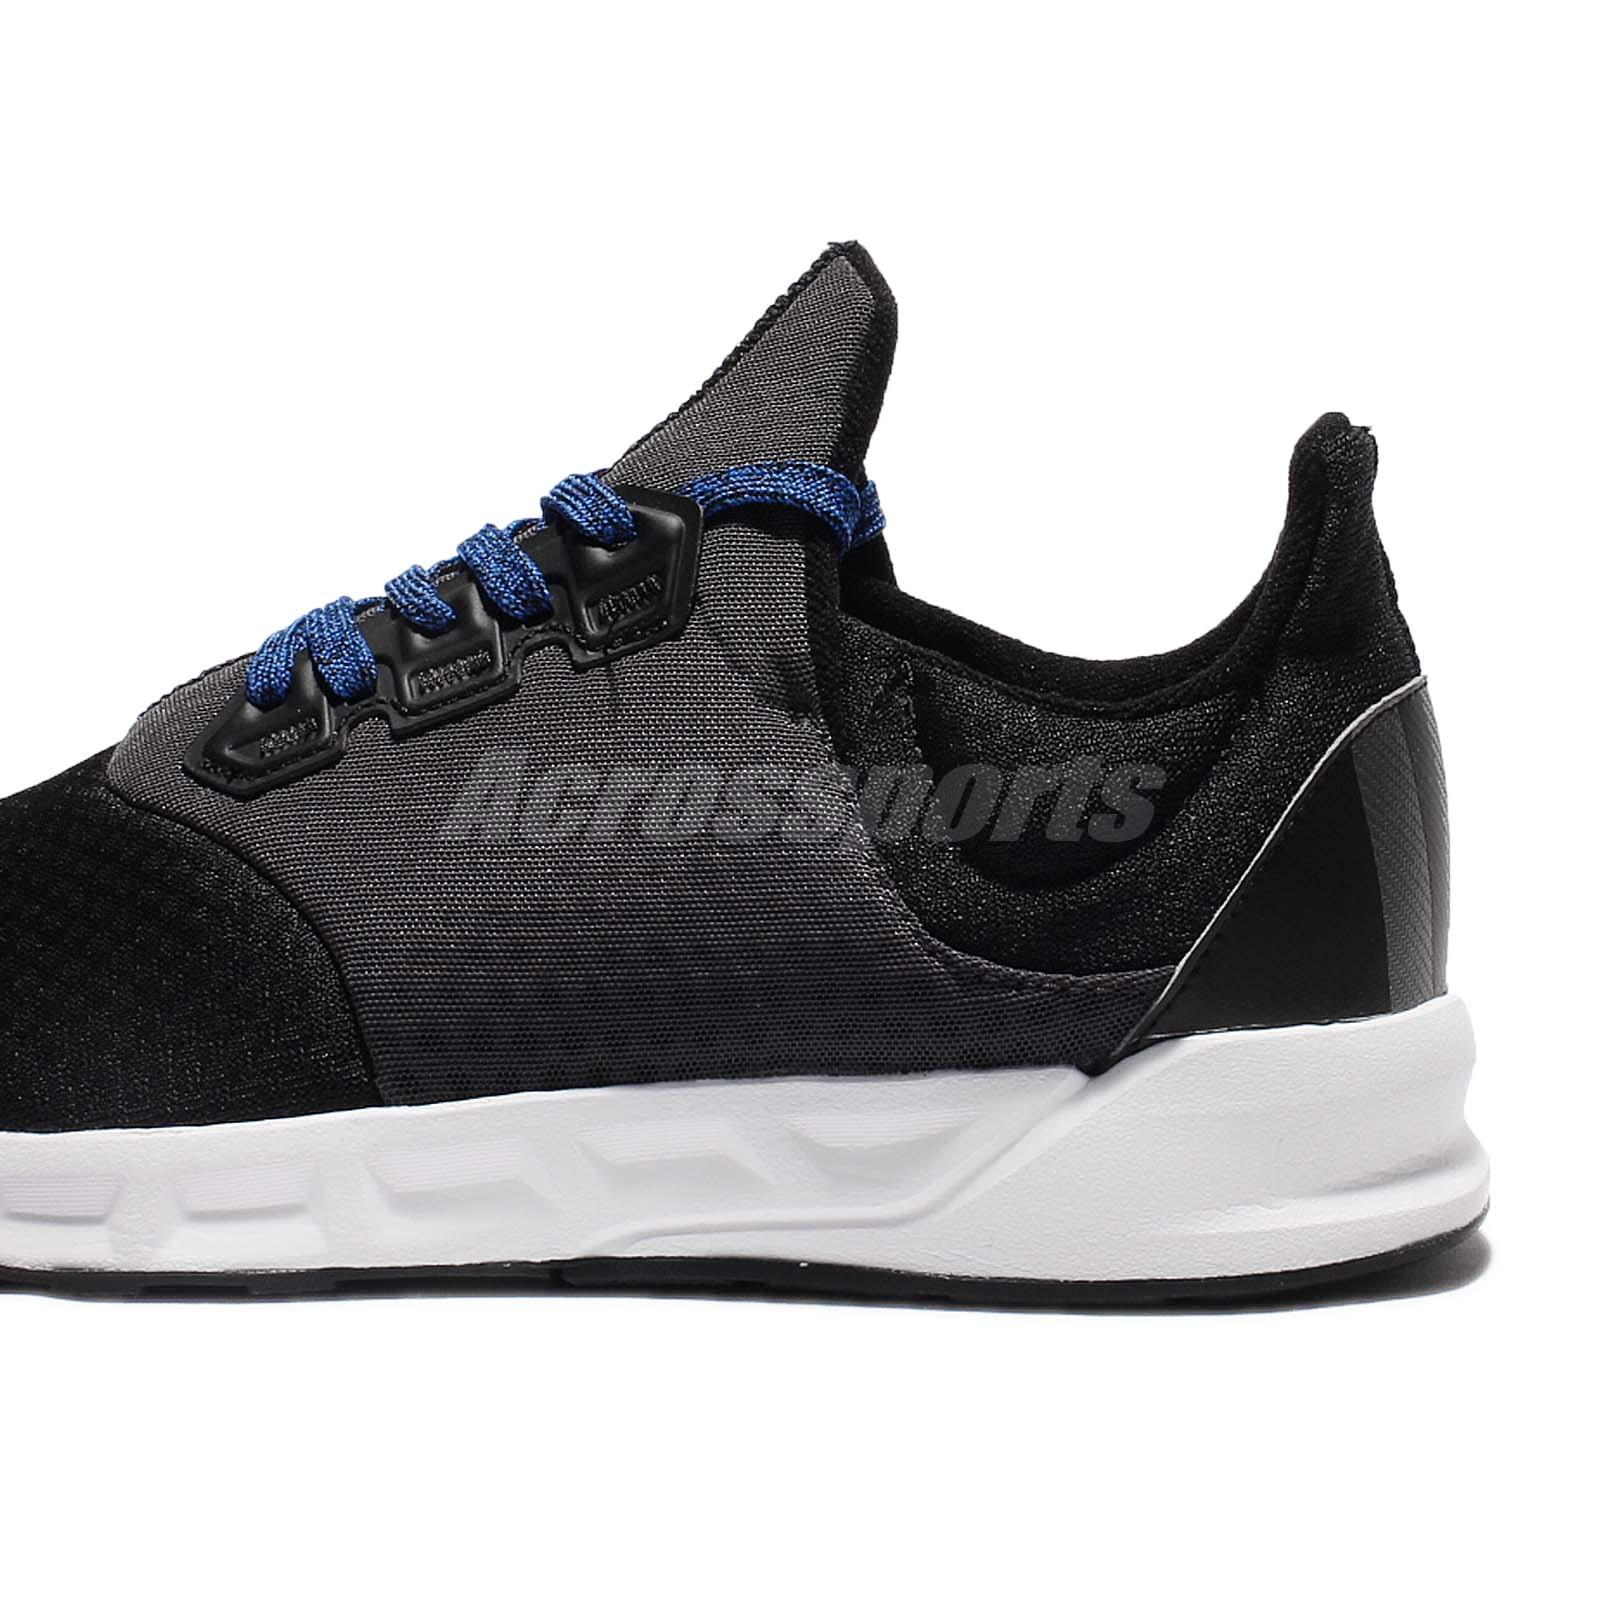 adidas falcon elite 3 mens trainers